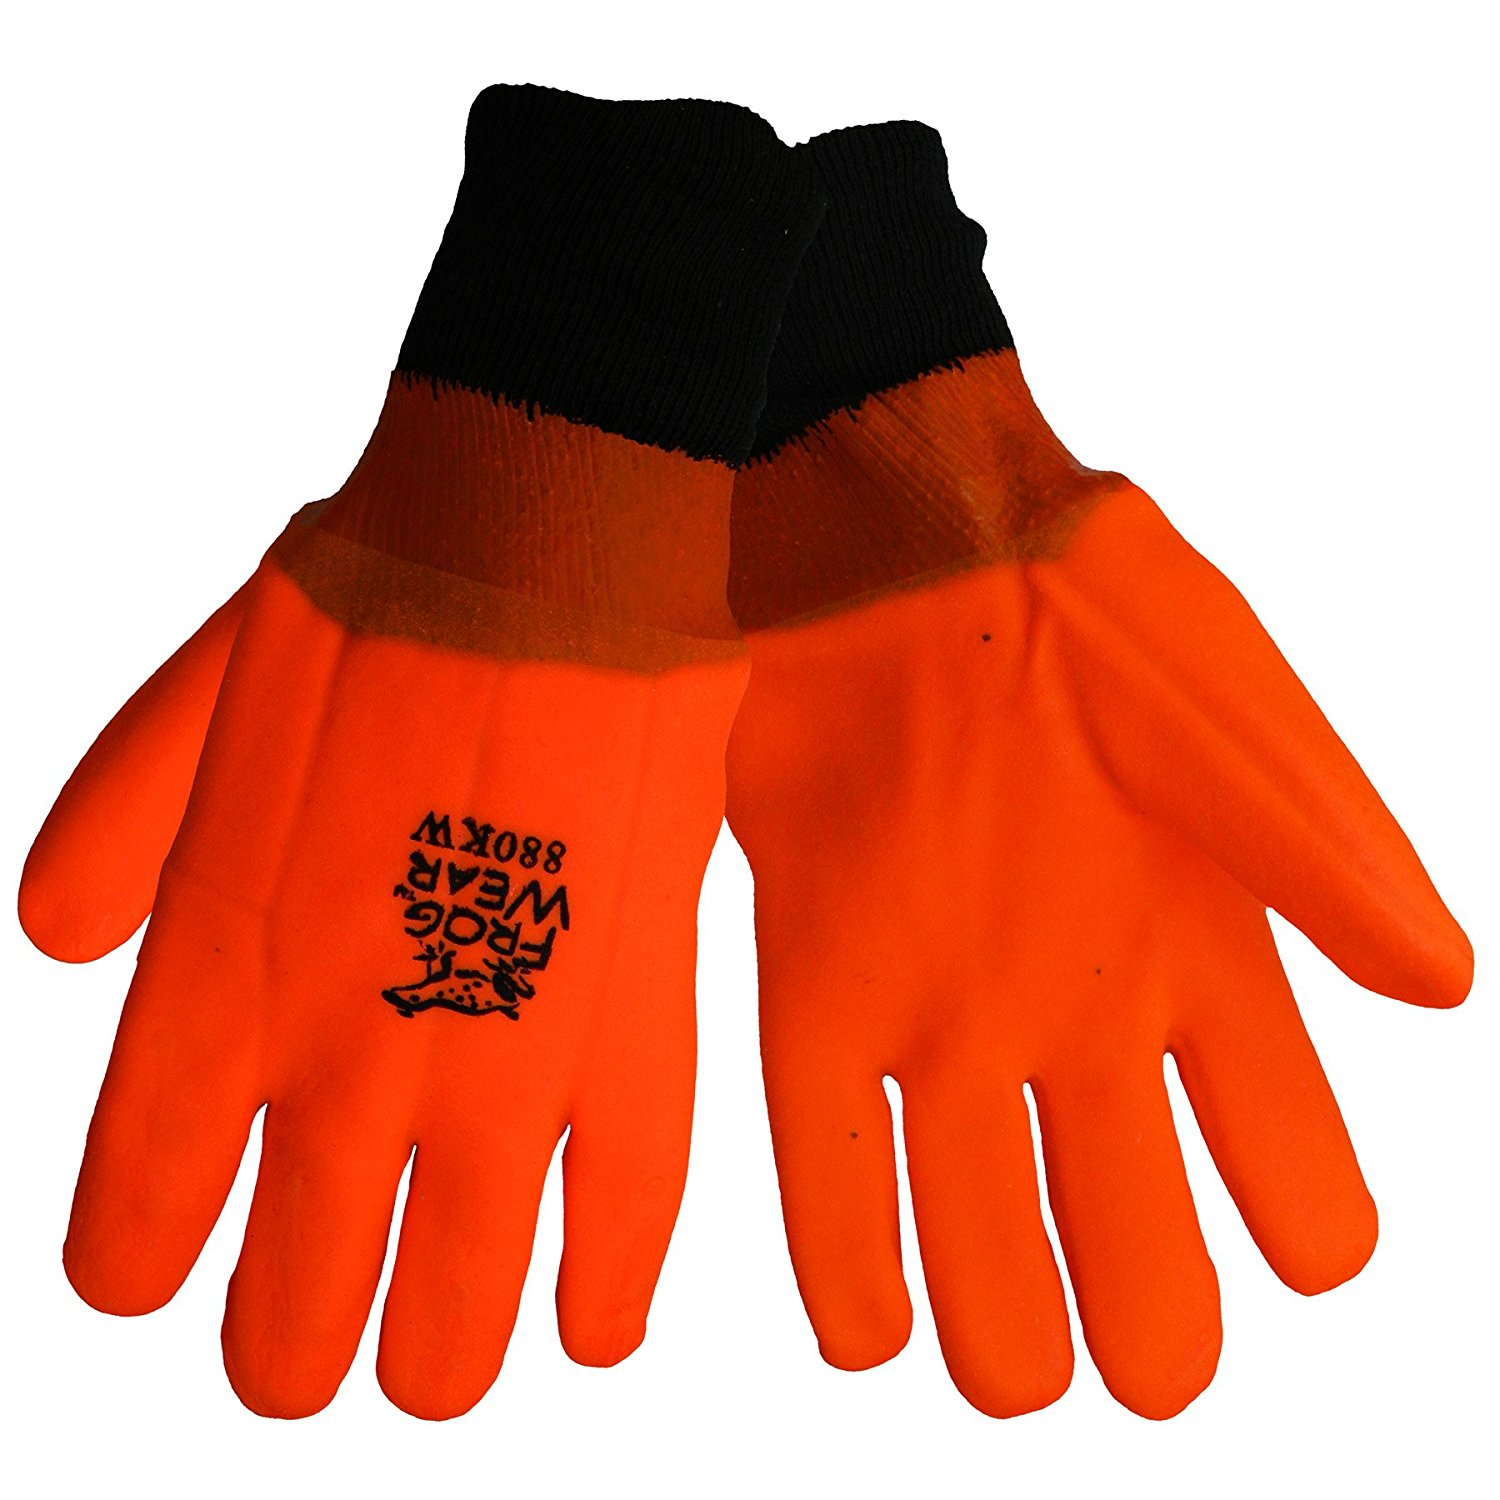 SHOWA Atlas 660XL-10 Triple-Dipped PVC Coated Glove with Cotton Liner X-Large Pack of 12 Pairs